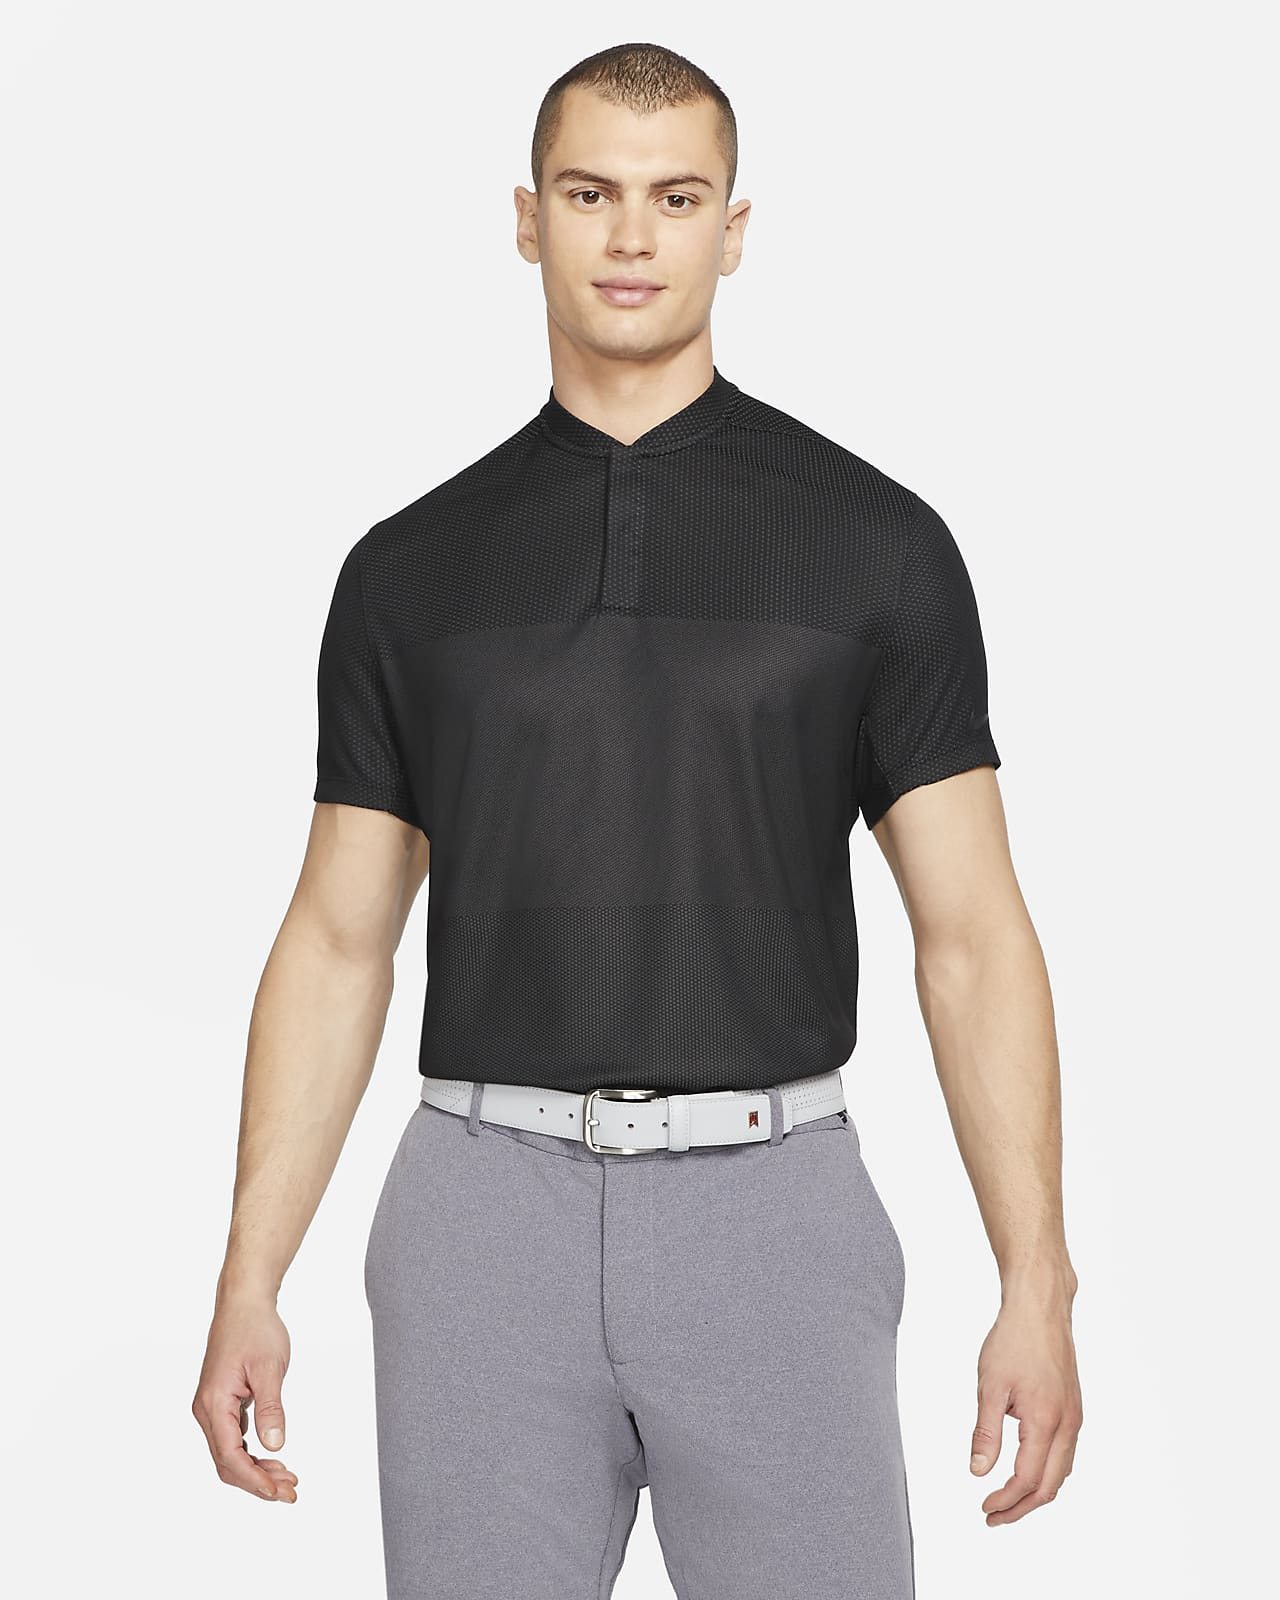 Nike Dri-FIT ADV Tiger Woods Golfpolo voor heren